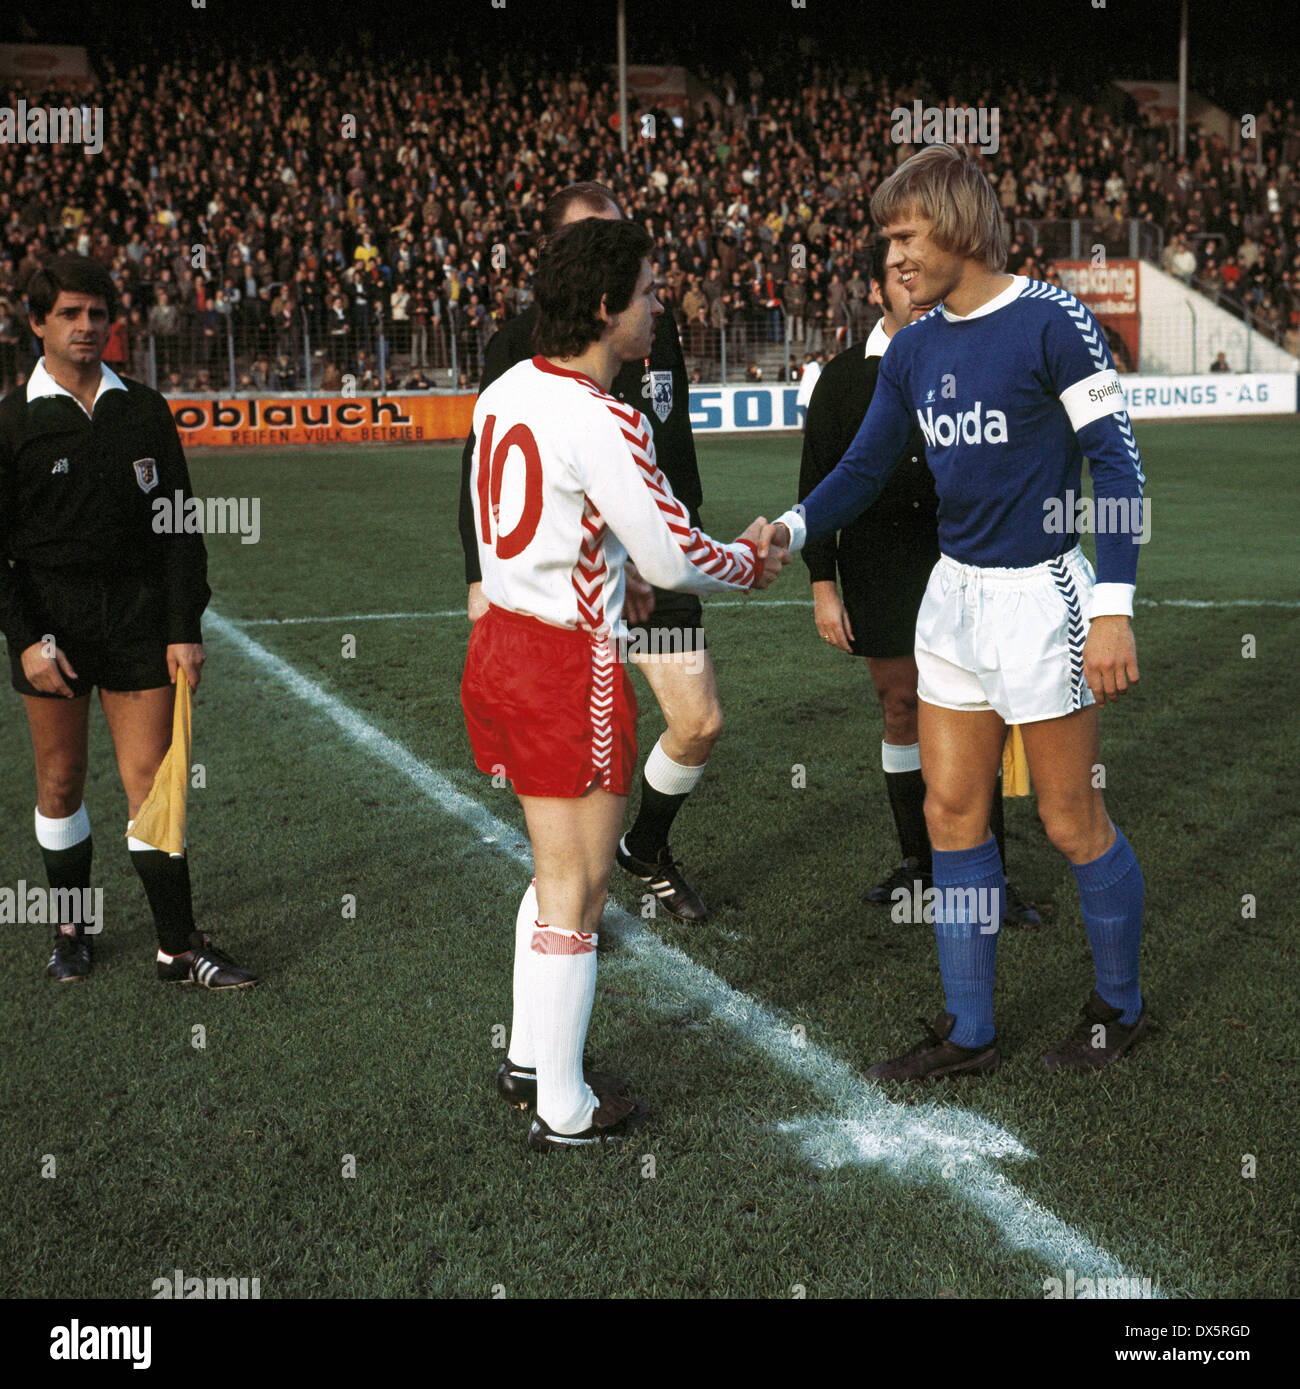 football, Bundesliga, 1976/1977, Georg Melches Stadium, Rot Weiss Essen versus SV Werder Bremen 0:0, welcome, team leaders Dieter Bast (RWE) left and Per Roentved (Werder), behind referee Rudolf Frickel and assistants - Stock Image